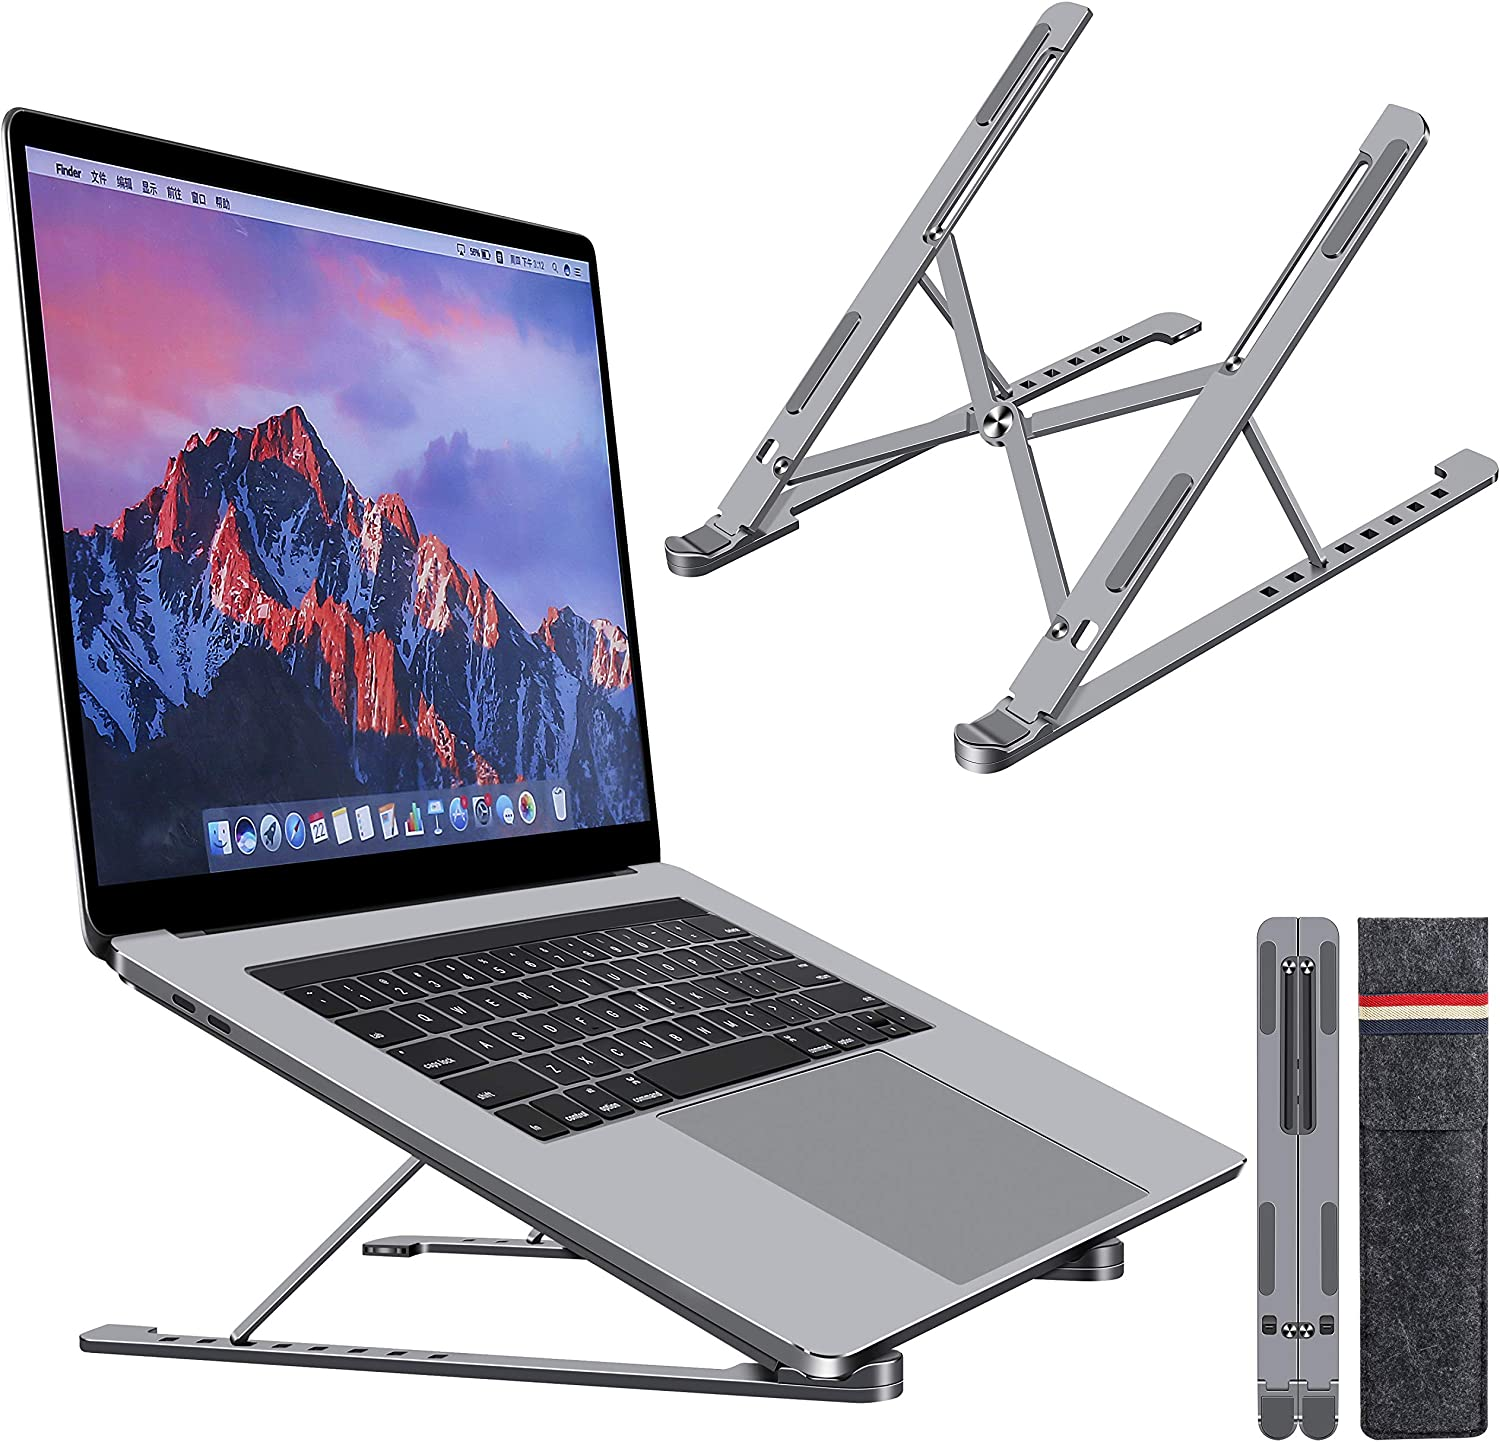 "Laptop Stand, Foldable Desktop Holder, Portable Computer Laptop Mount Aluminum Laptop Riser with 8 Levels Height Adjustment, for MacBook Air Pro, Dell XPS, HP, Lenovo, Fits up to 17.3"", Space Grey"